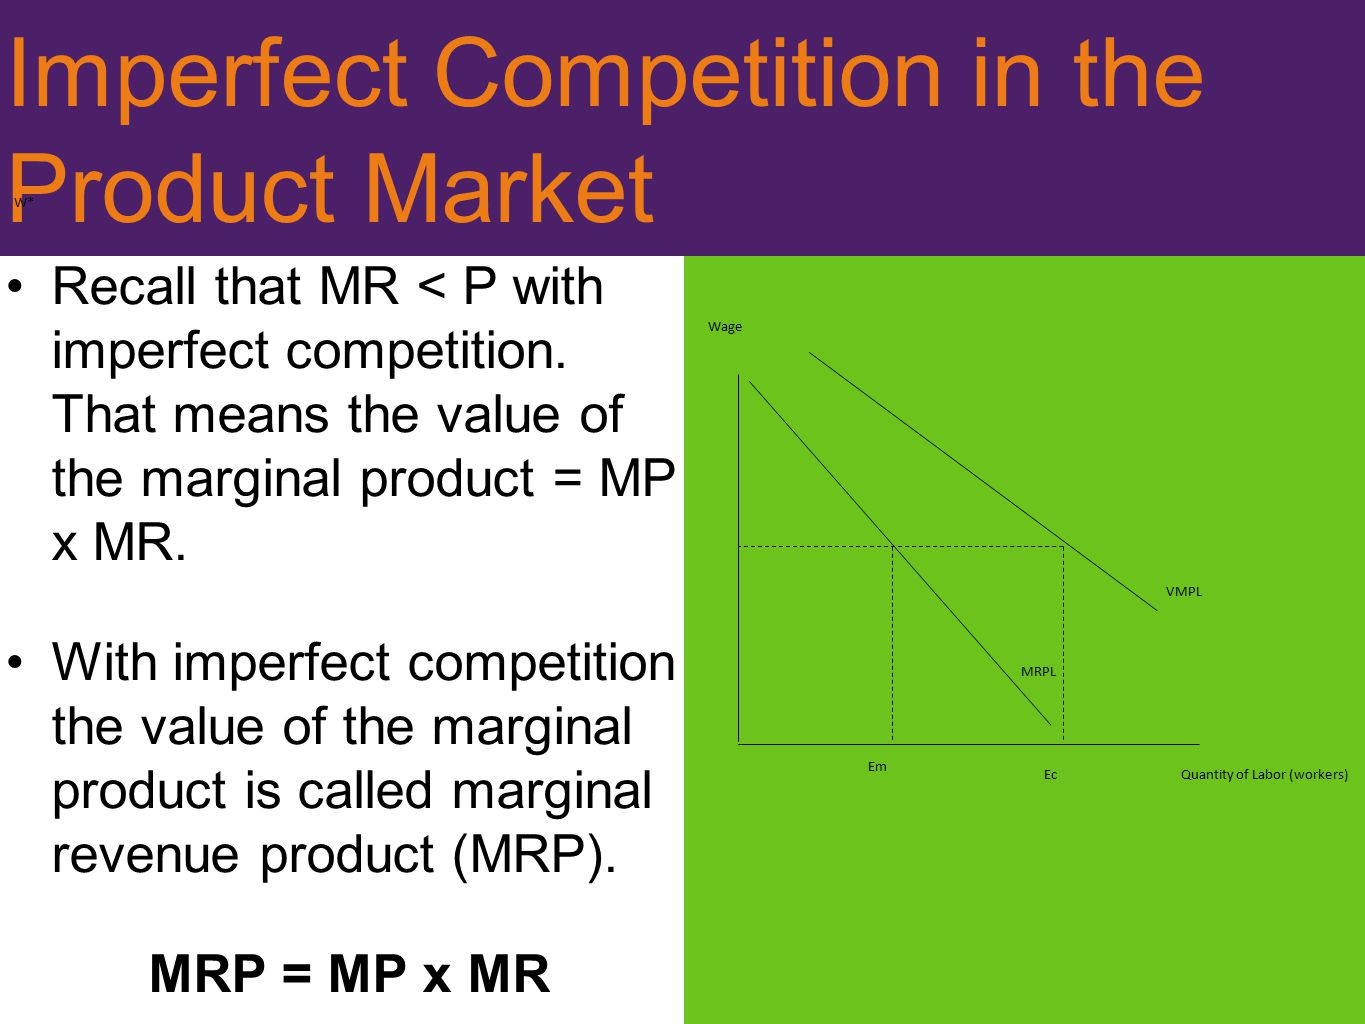 Imperfect Competition in the Product Market